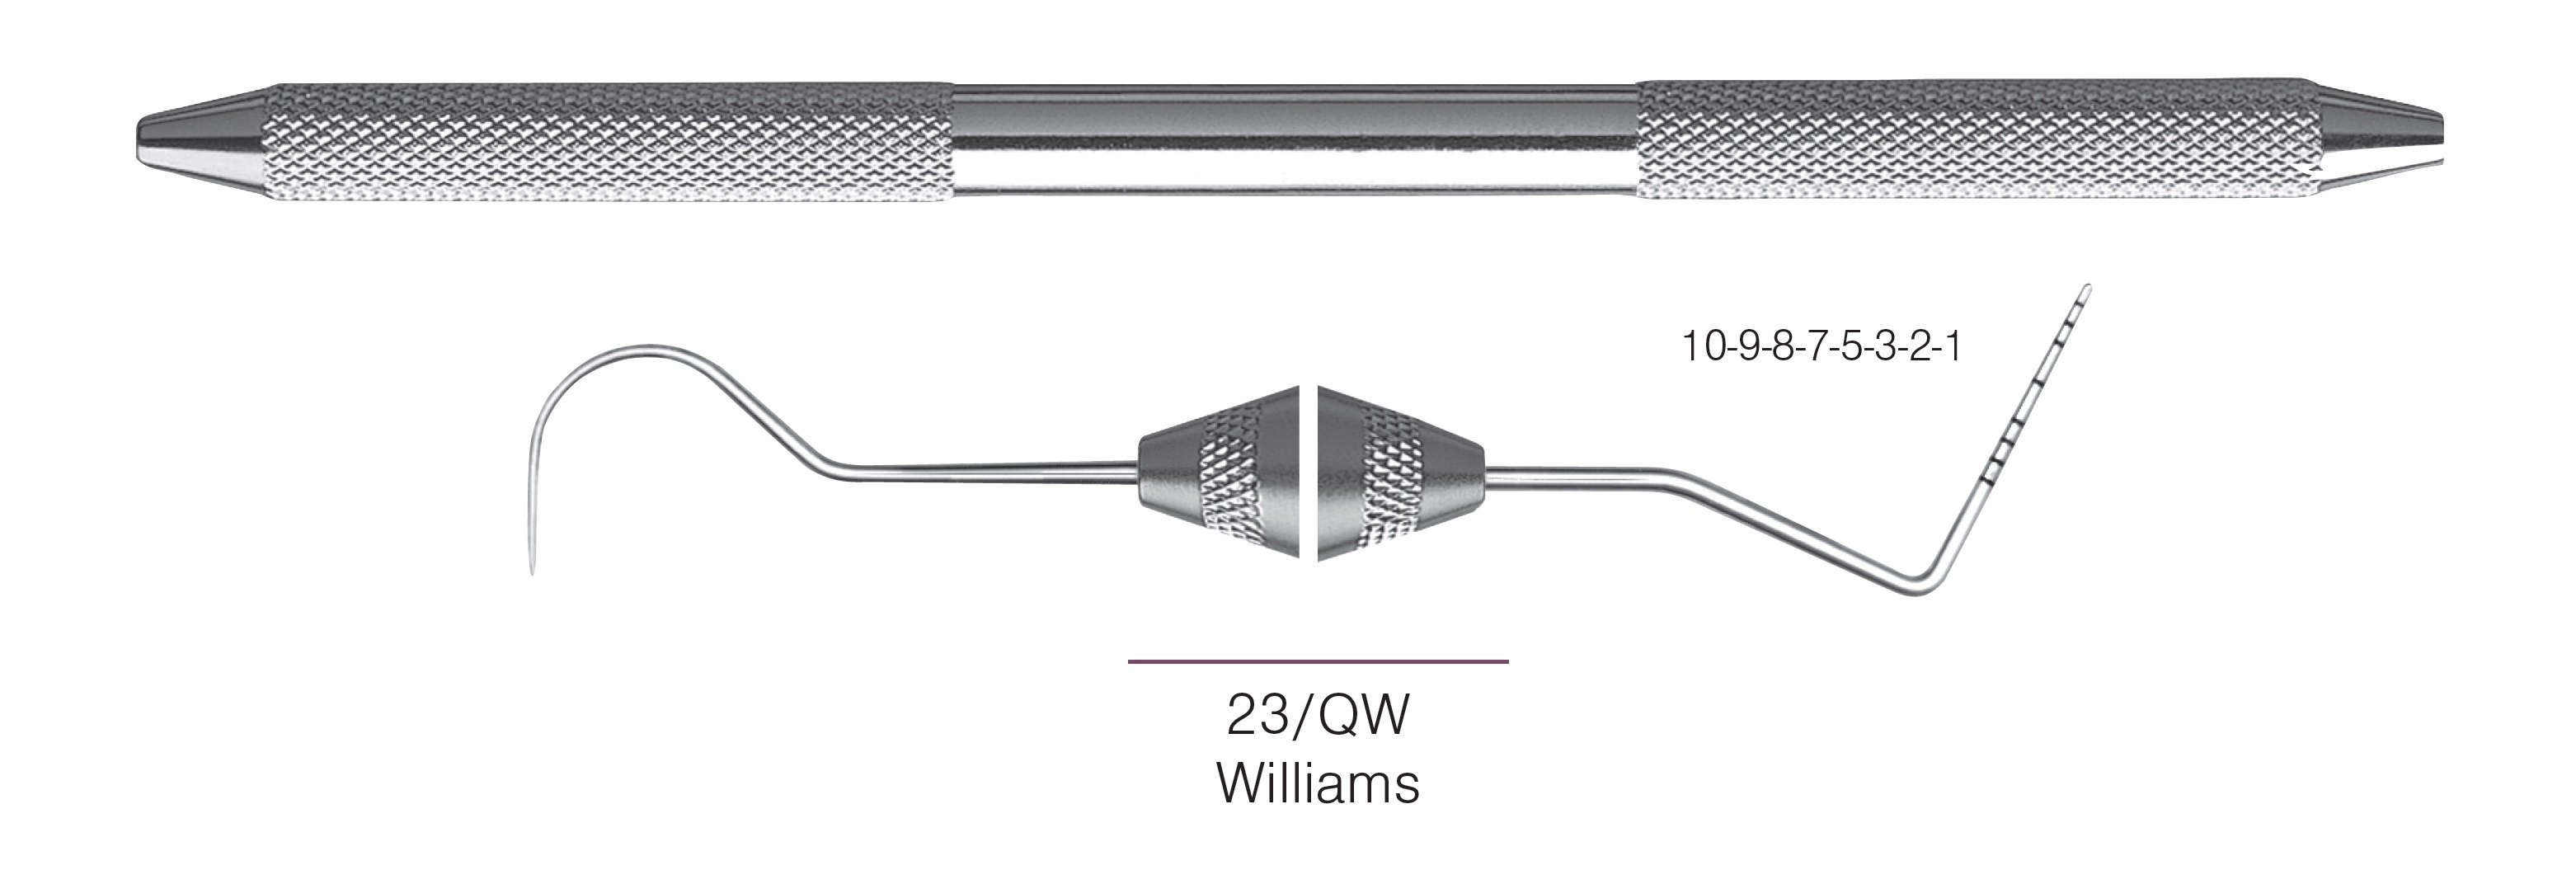 HF-XP23-QW6-31, EXPROS, Explorer #23/QW and Williams Probes, Black markings, 10-9-8-7-5-3-2-1 mm, Handle round, Double Ended